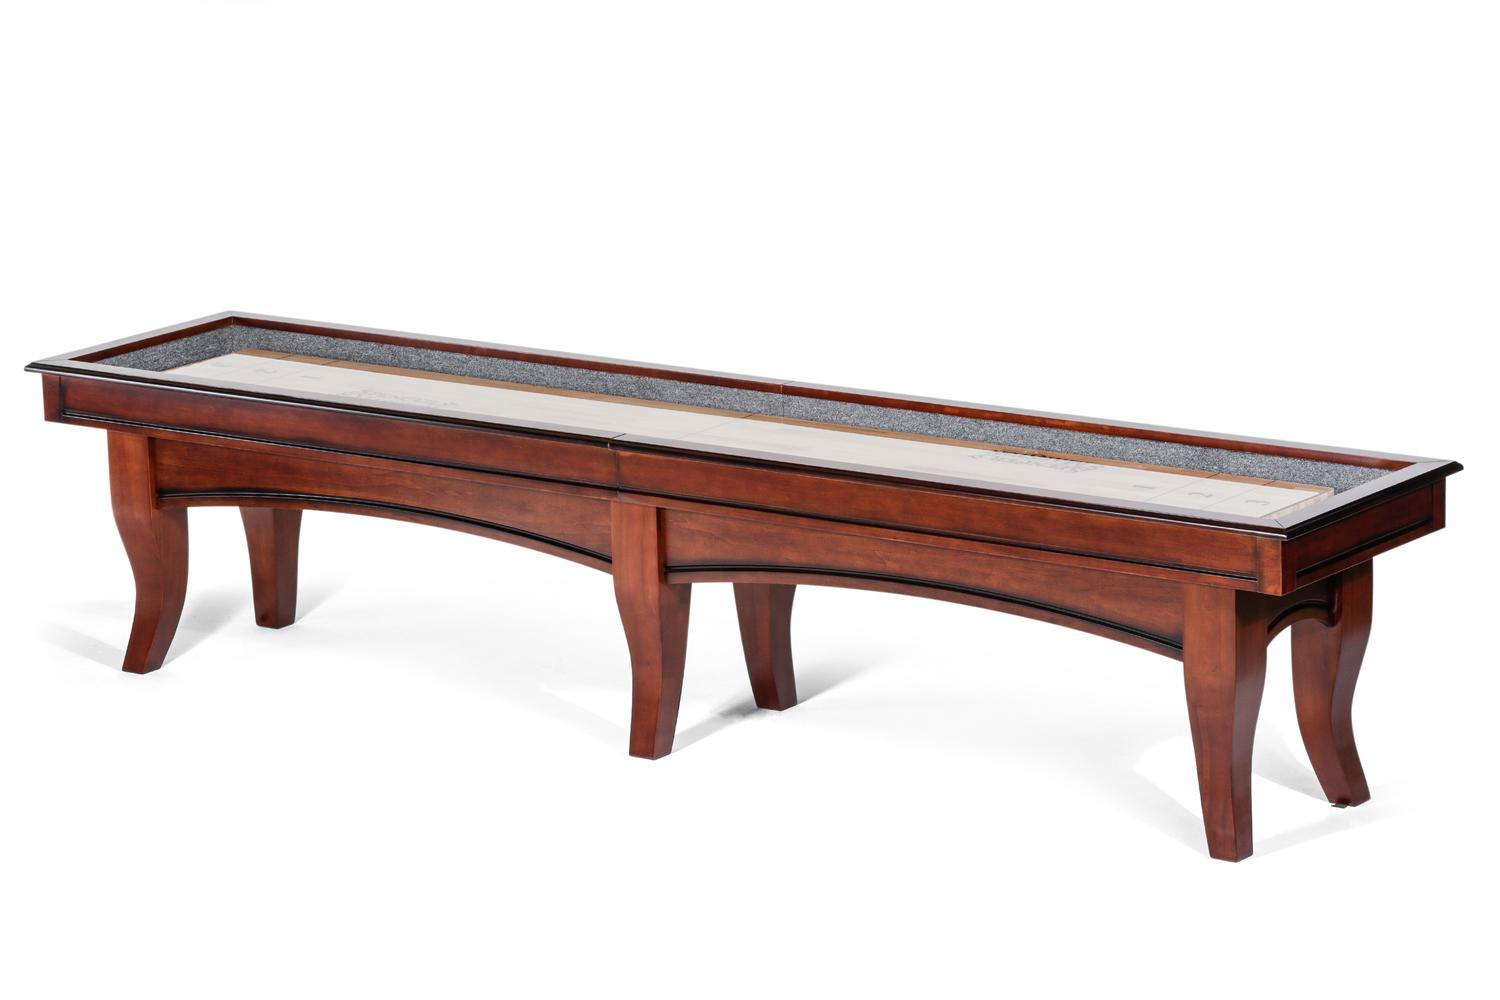 Spencer marston 12 foot shuffleboard table for 12 foot shuffle board table